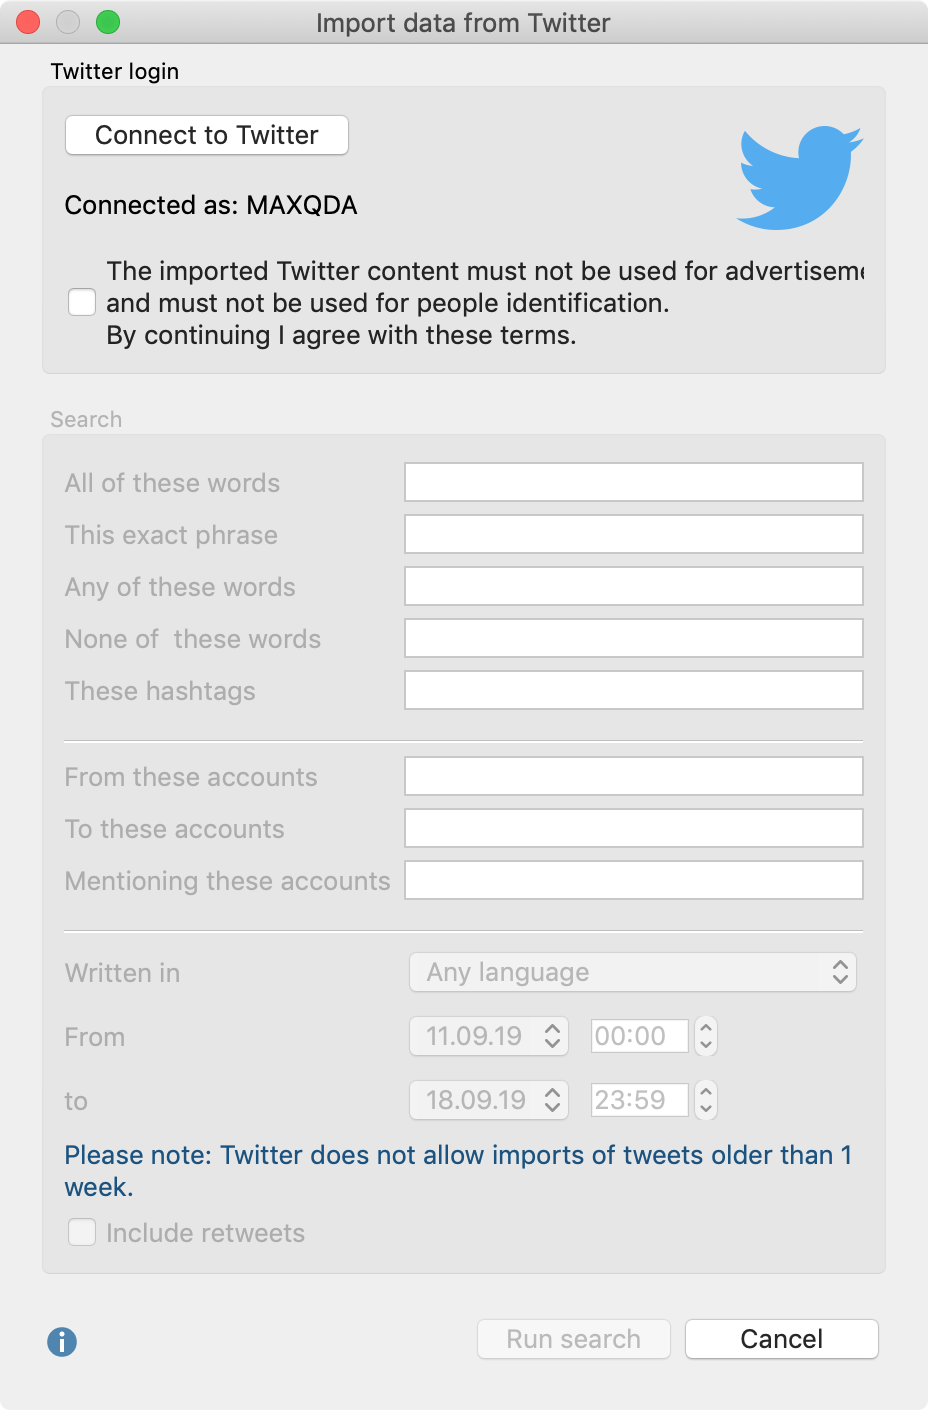 Dialog window for importing data from Twitter